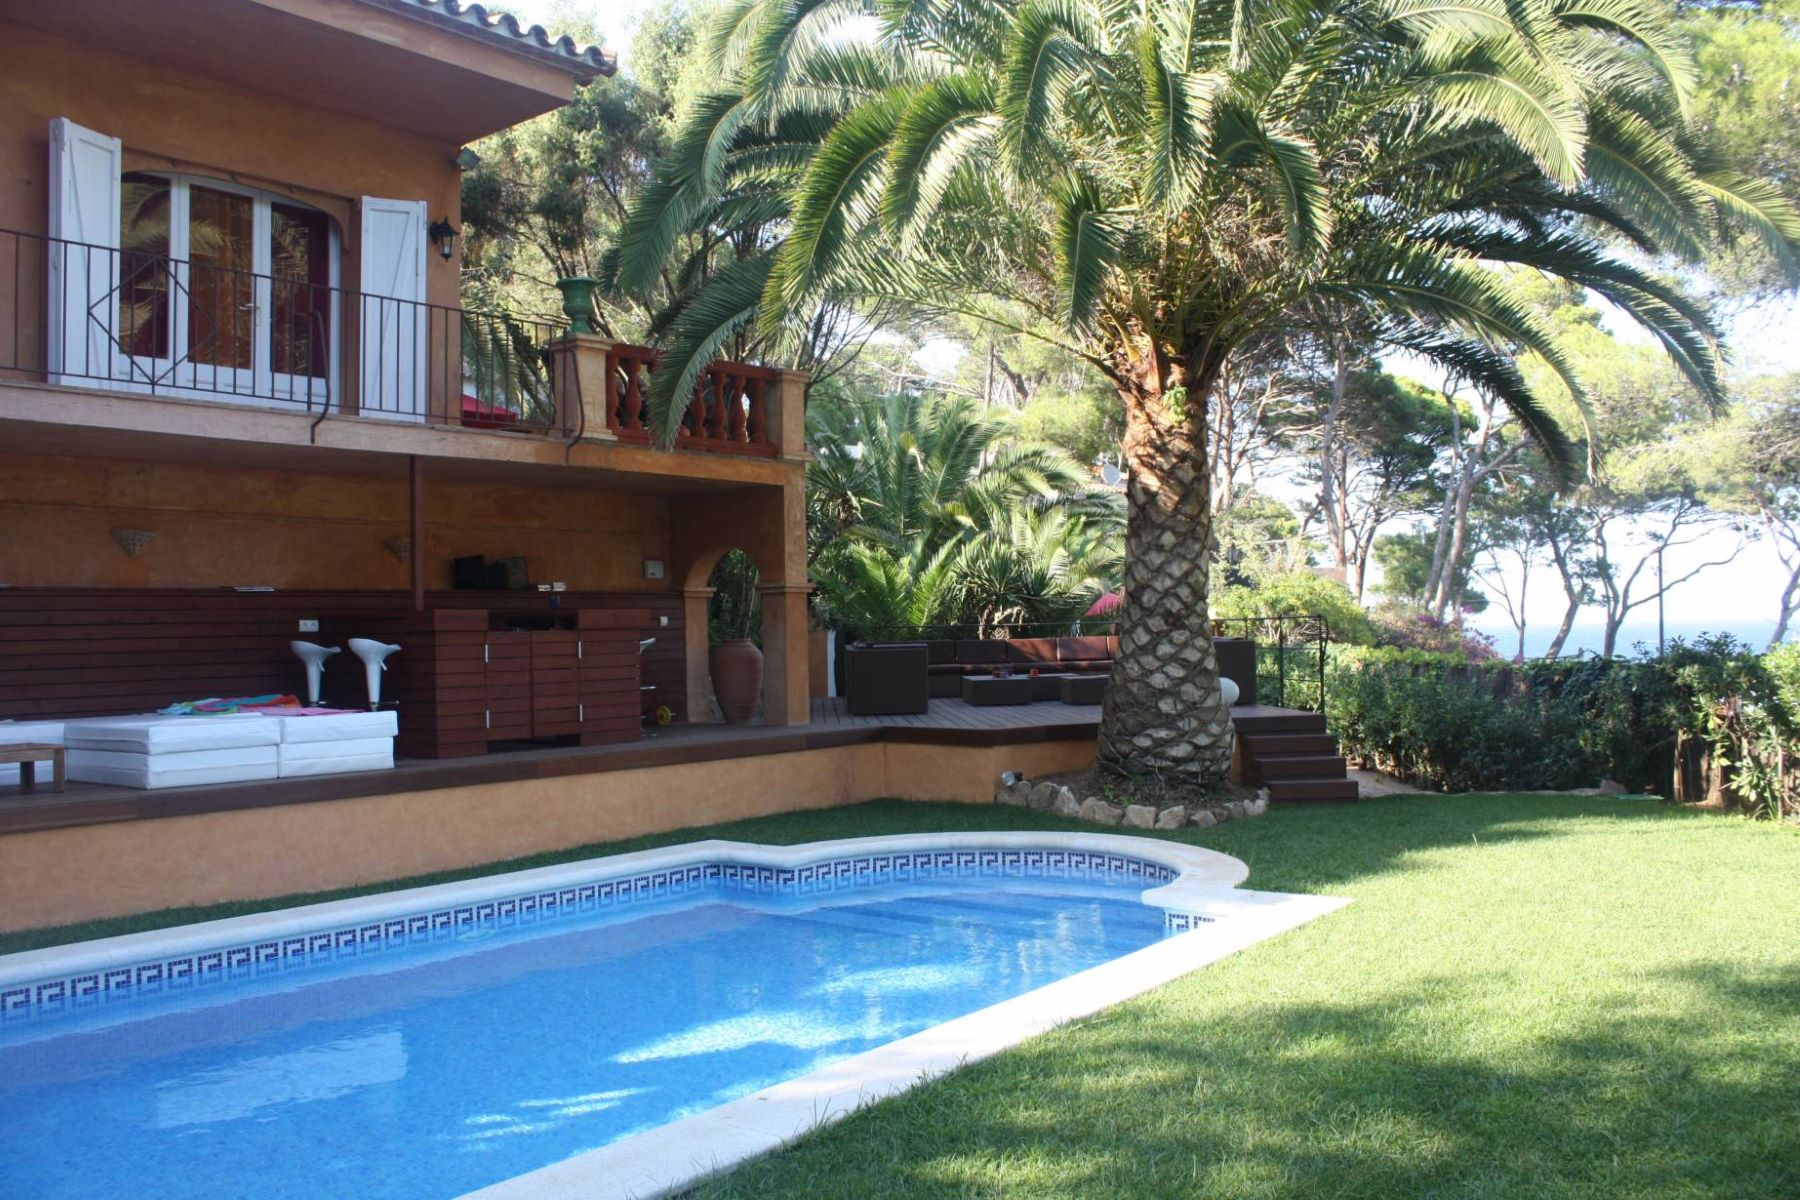 Single Family Home for Sale at Villa for sale close to Sa Riera´s Beach Begur, Costa Brava, 17255 Spain